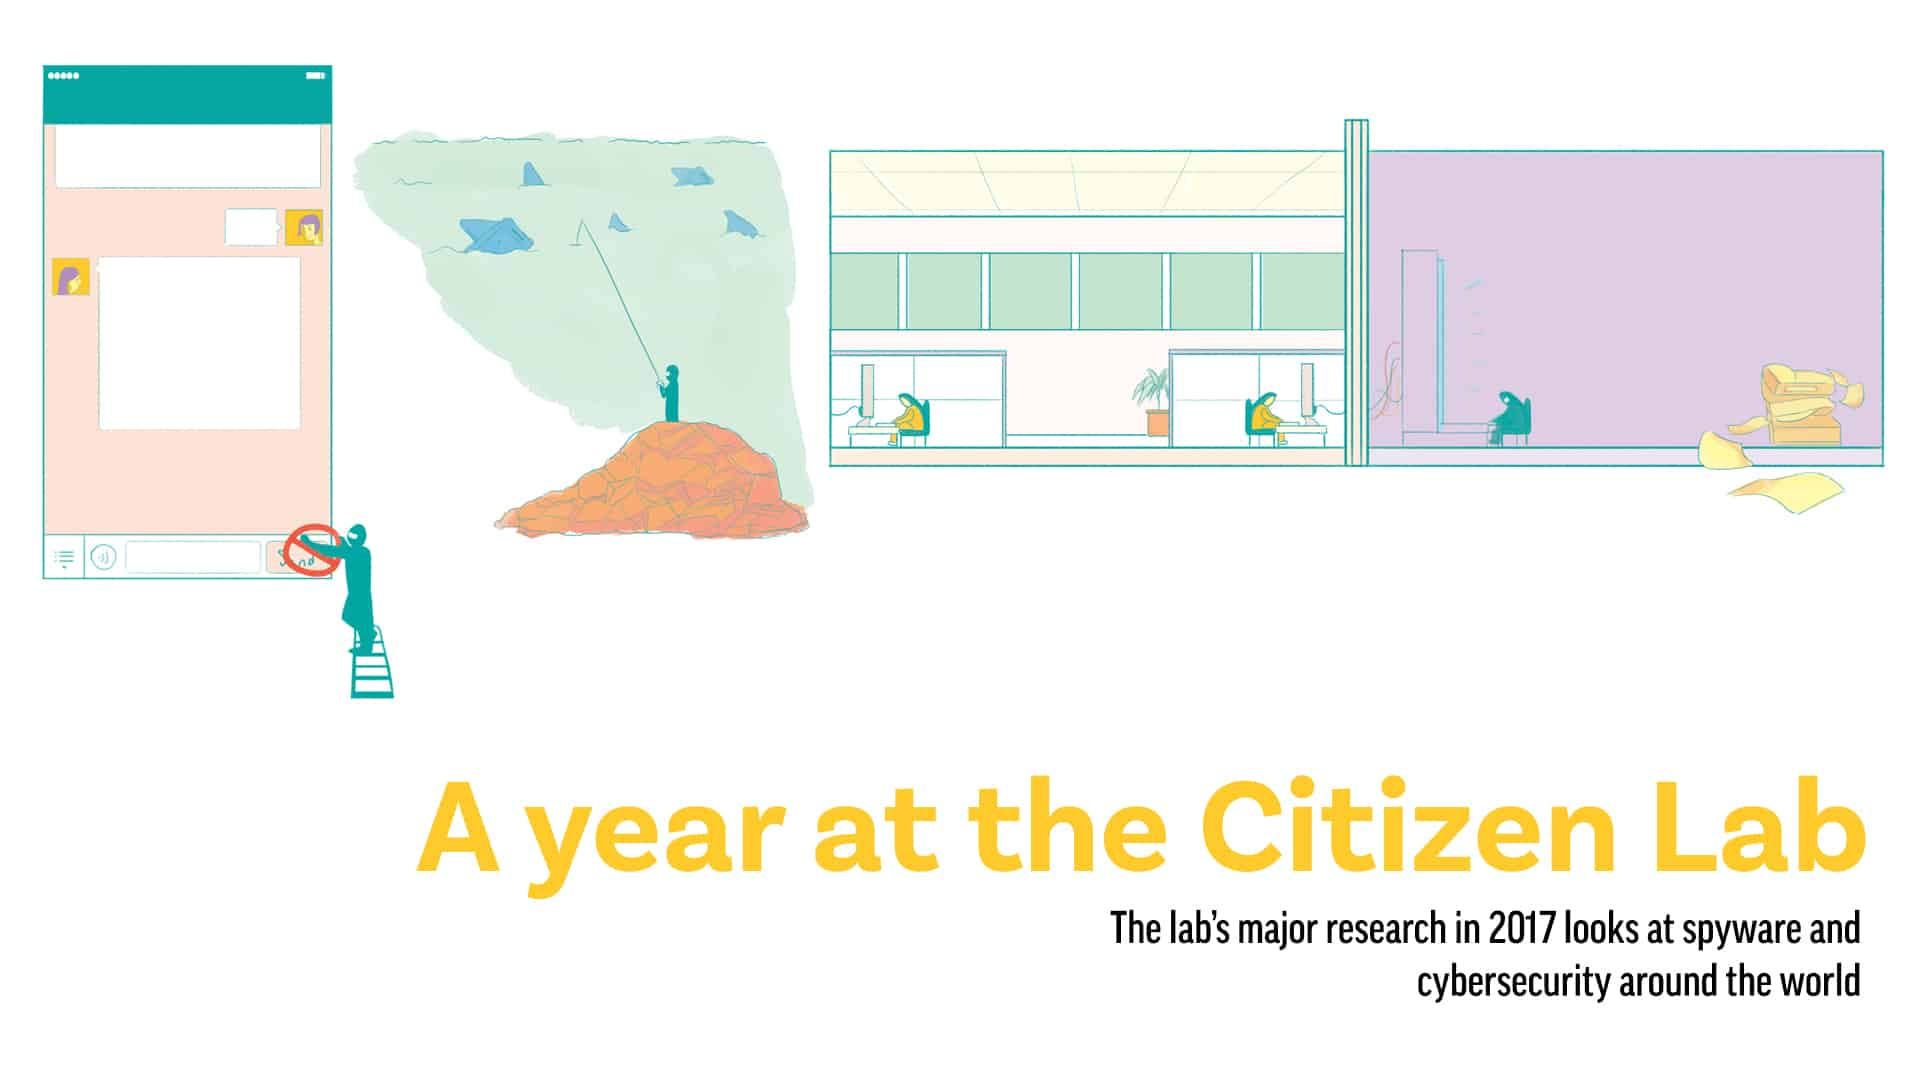 A year at the Citizen Lab